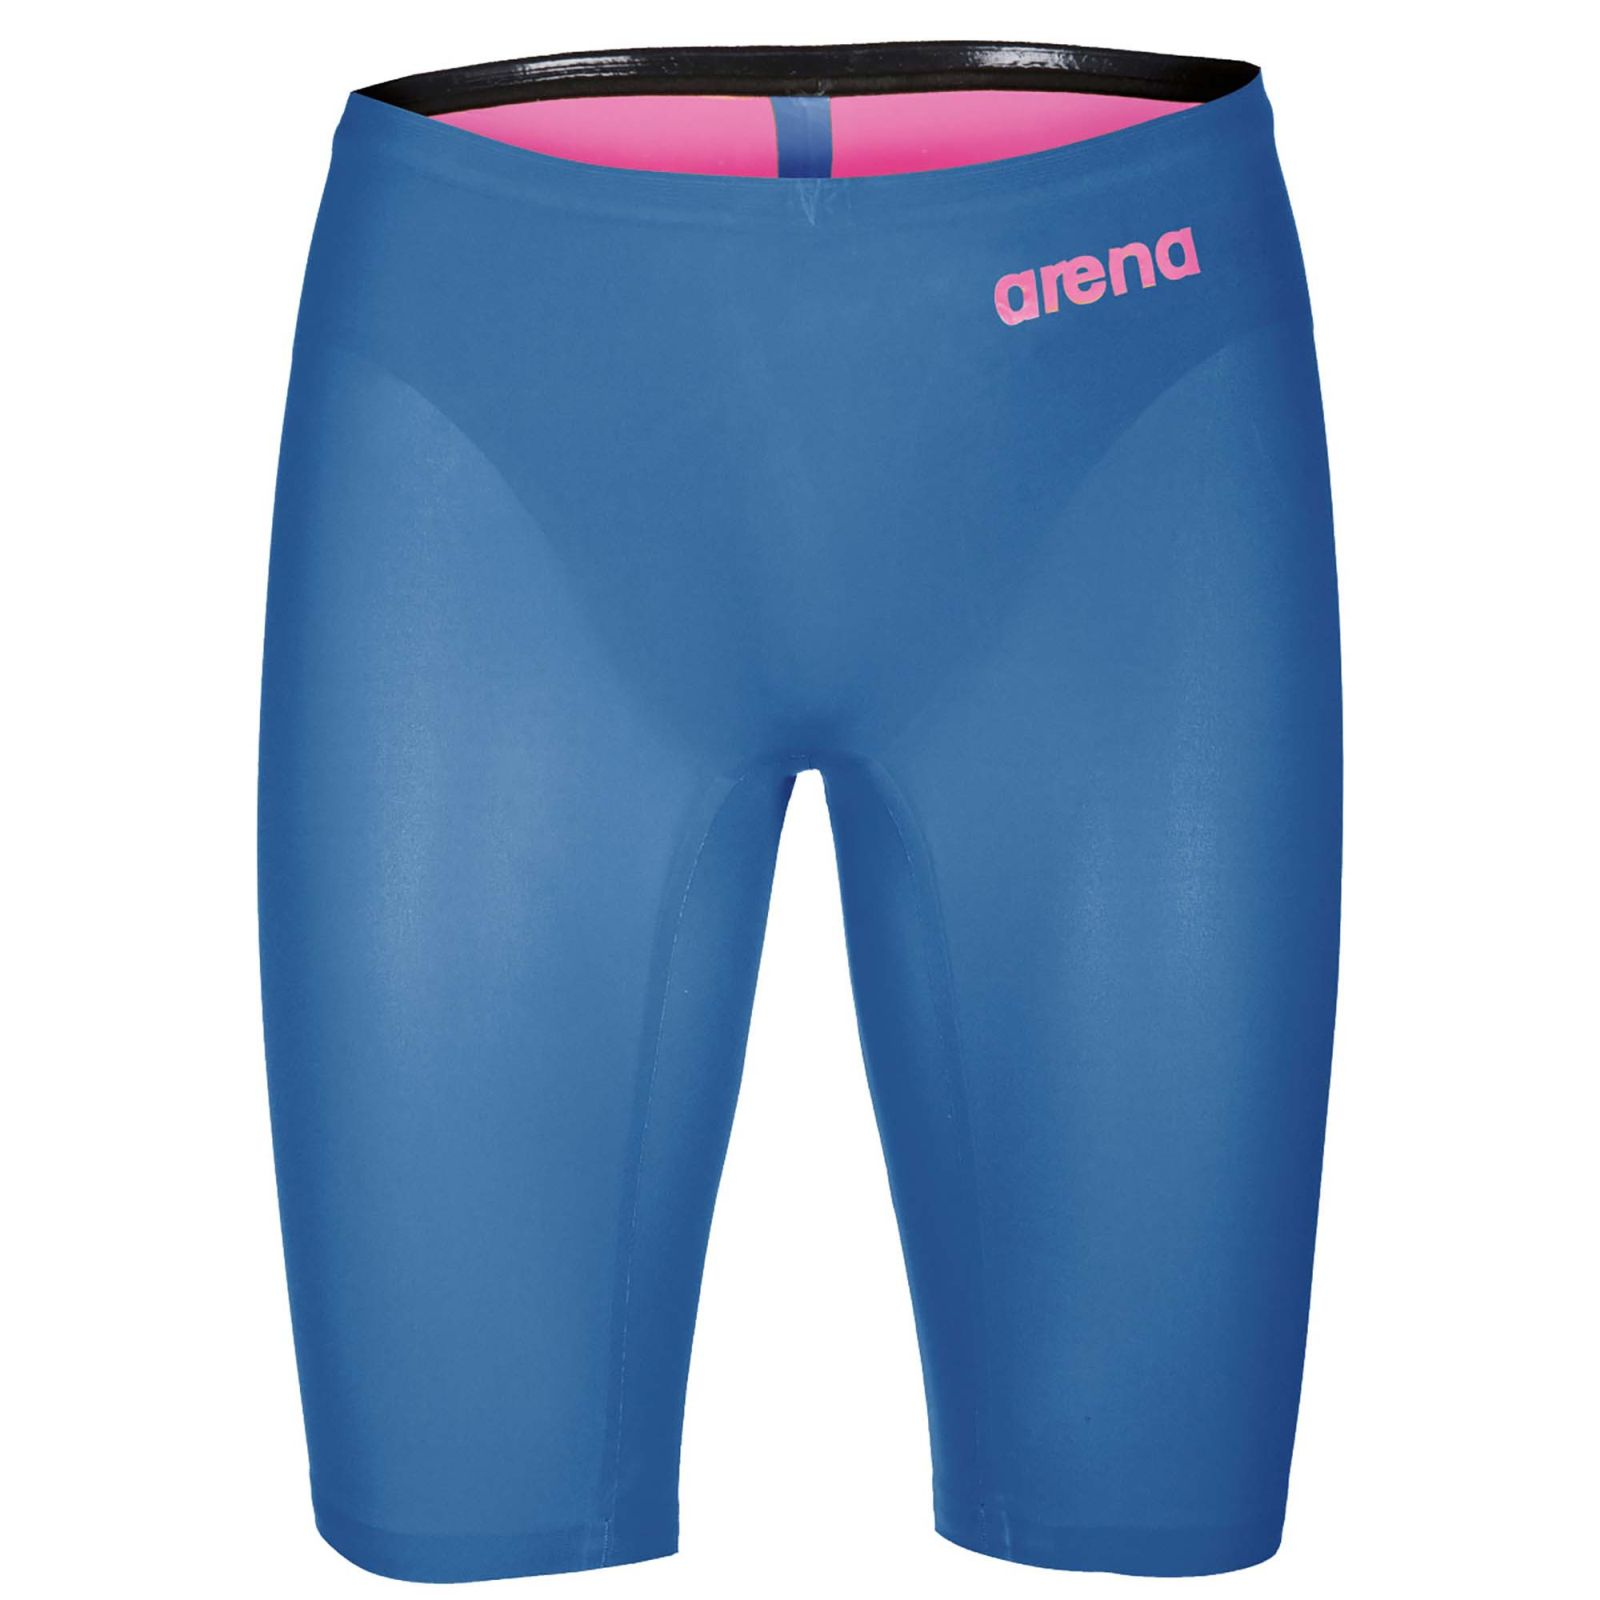 COSTUME NUOTO ARENA POWERSKIN R-EVO ONE JAMMER 001131 BLUE PINK.jpg